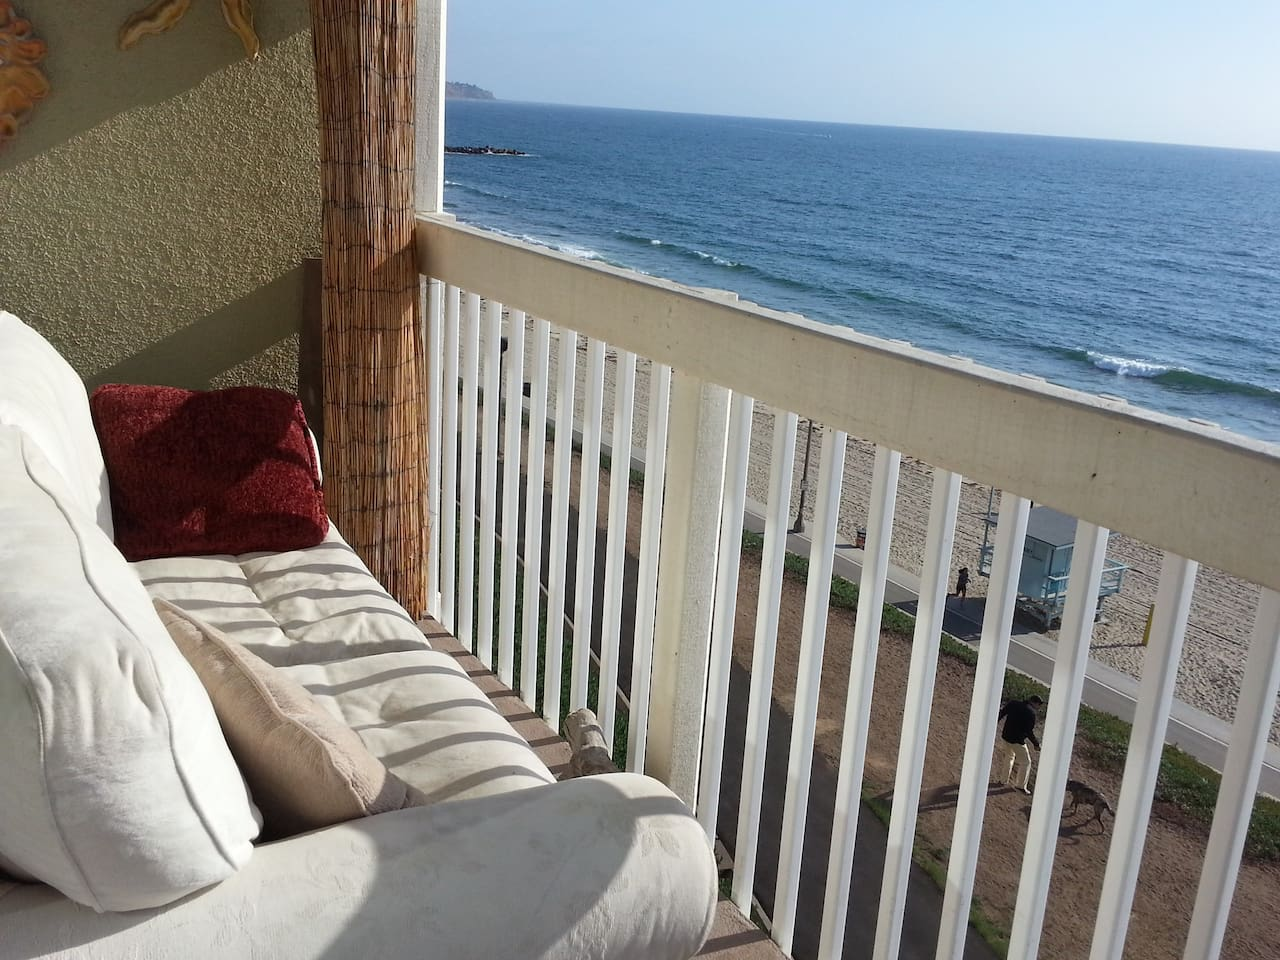 Lounge on the balcony, or have a glass of wine while you watch for dolphins and the occasional whale.